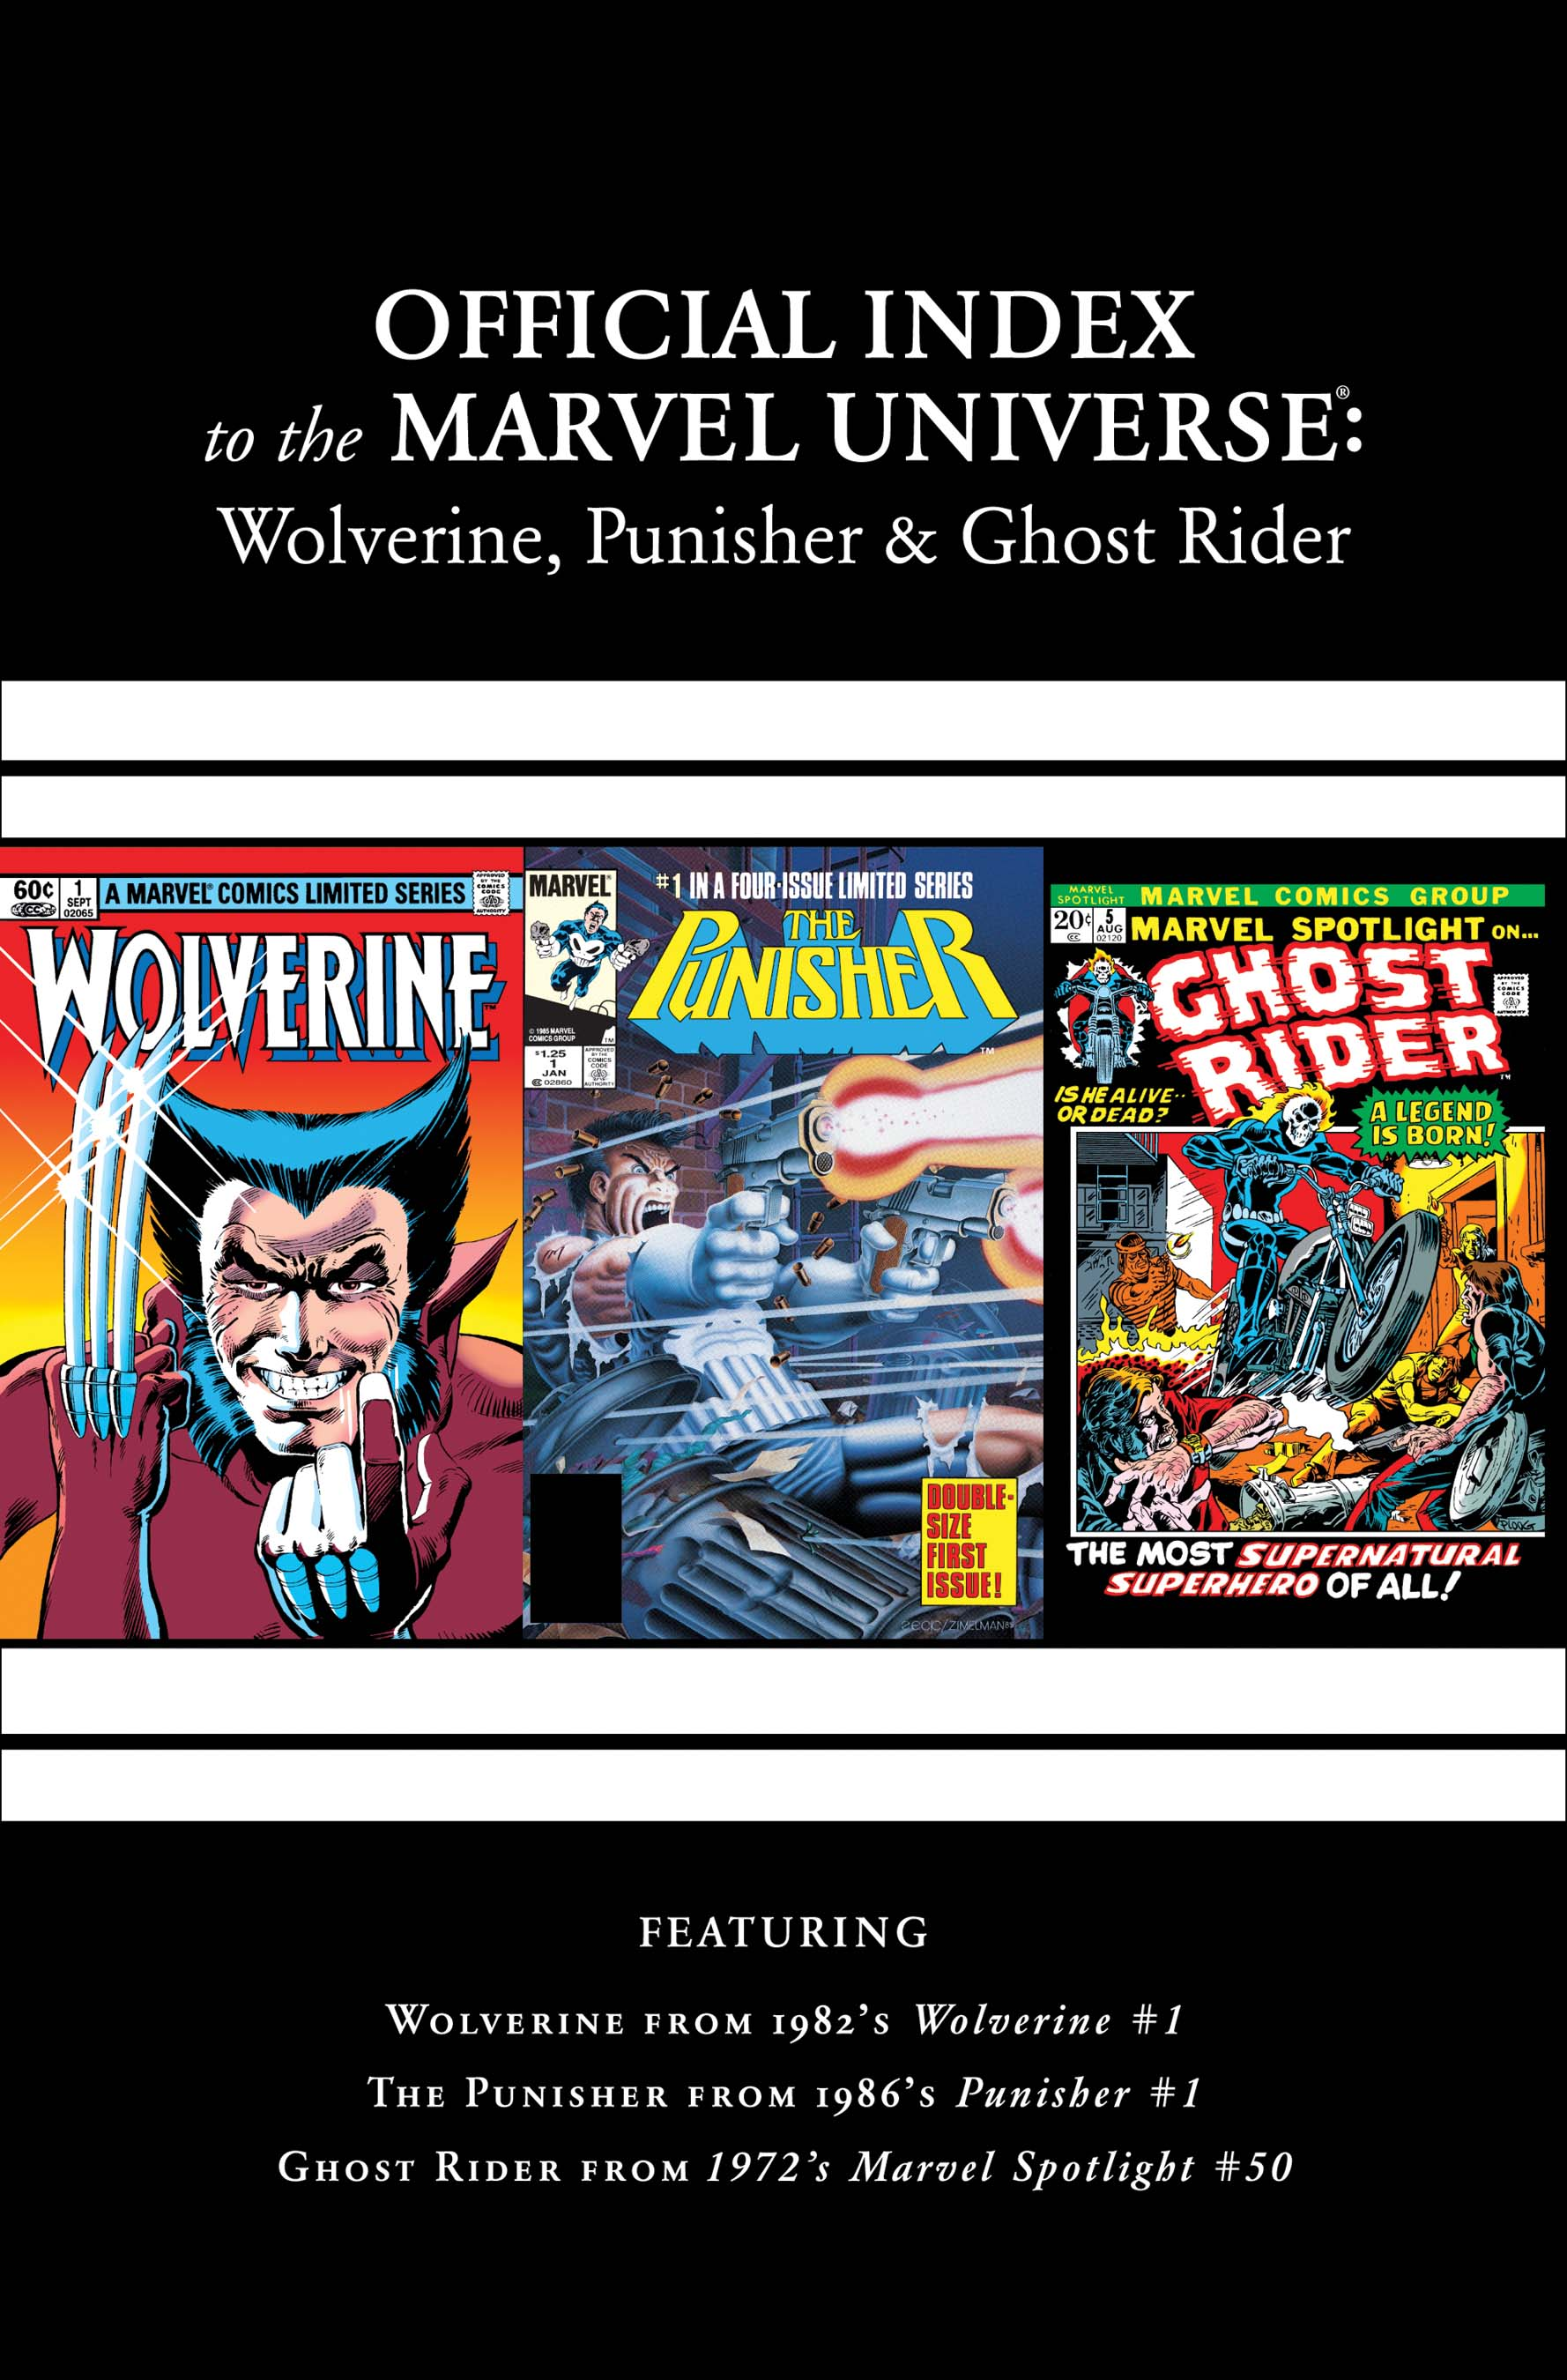 Wolverine, Punisher & Ghost Rider: Official Index to the Marvel Universe (2011) #1